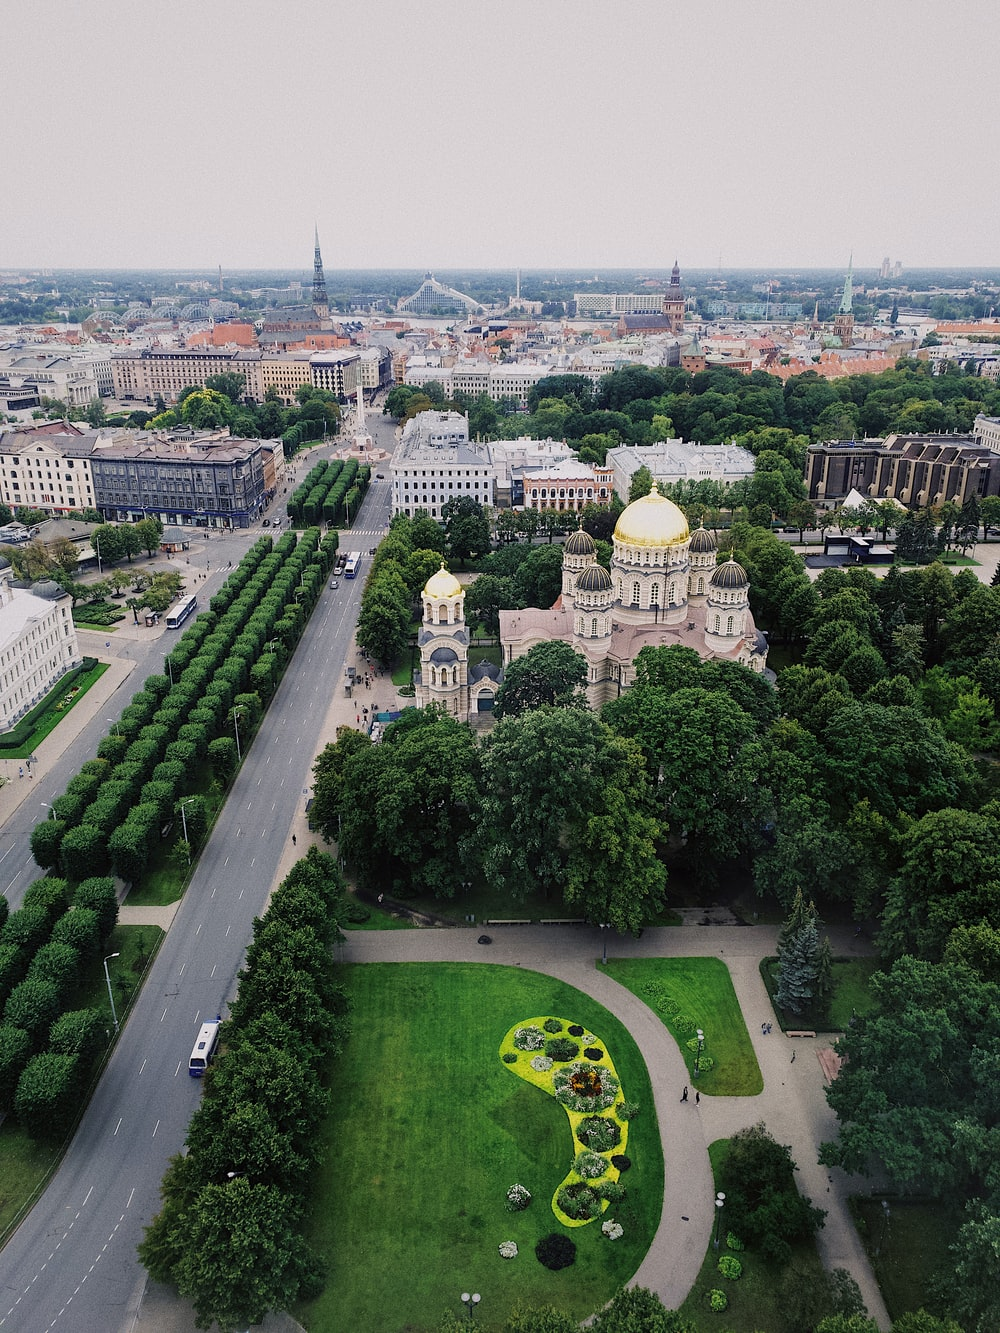 aerial view of city with garden and dome building